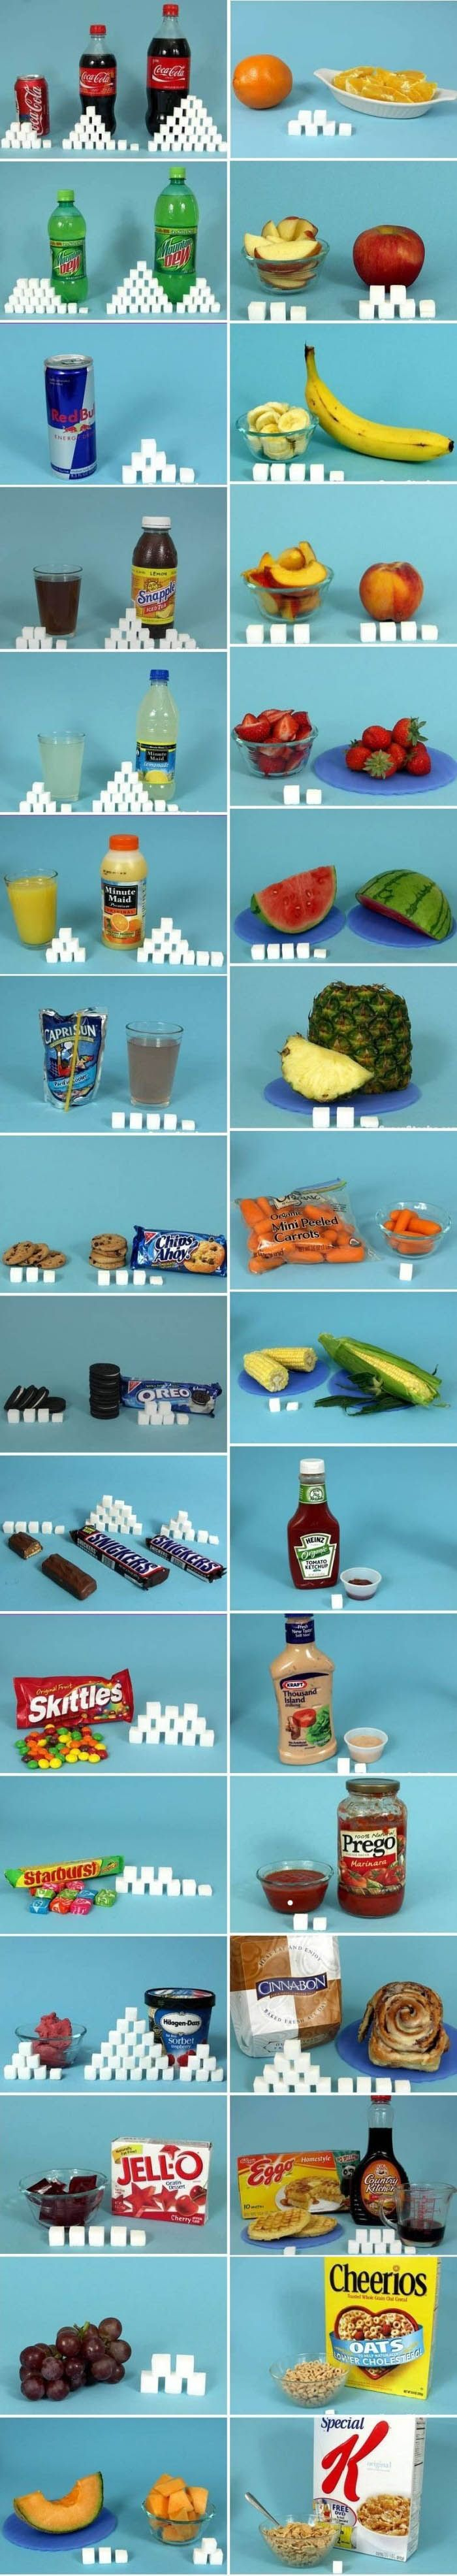 How Many Grams of Sugar Per Day?